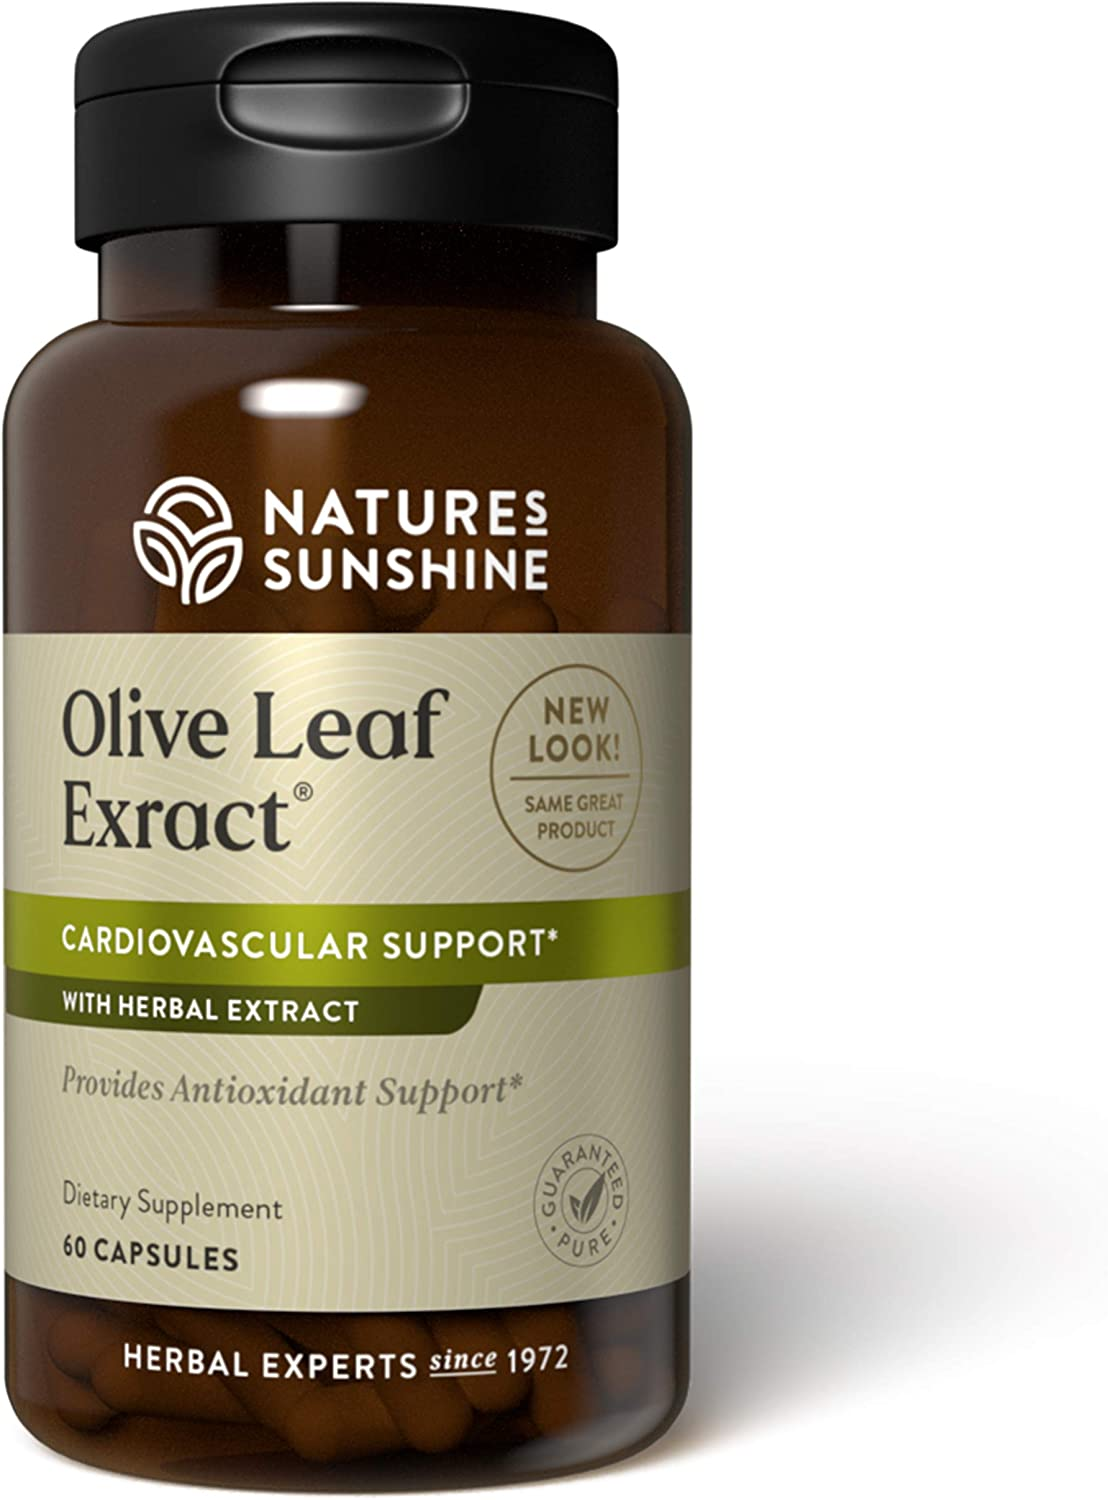 Nature's Sunshine Olive Leaf Extract Concentrate 60 Capsules